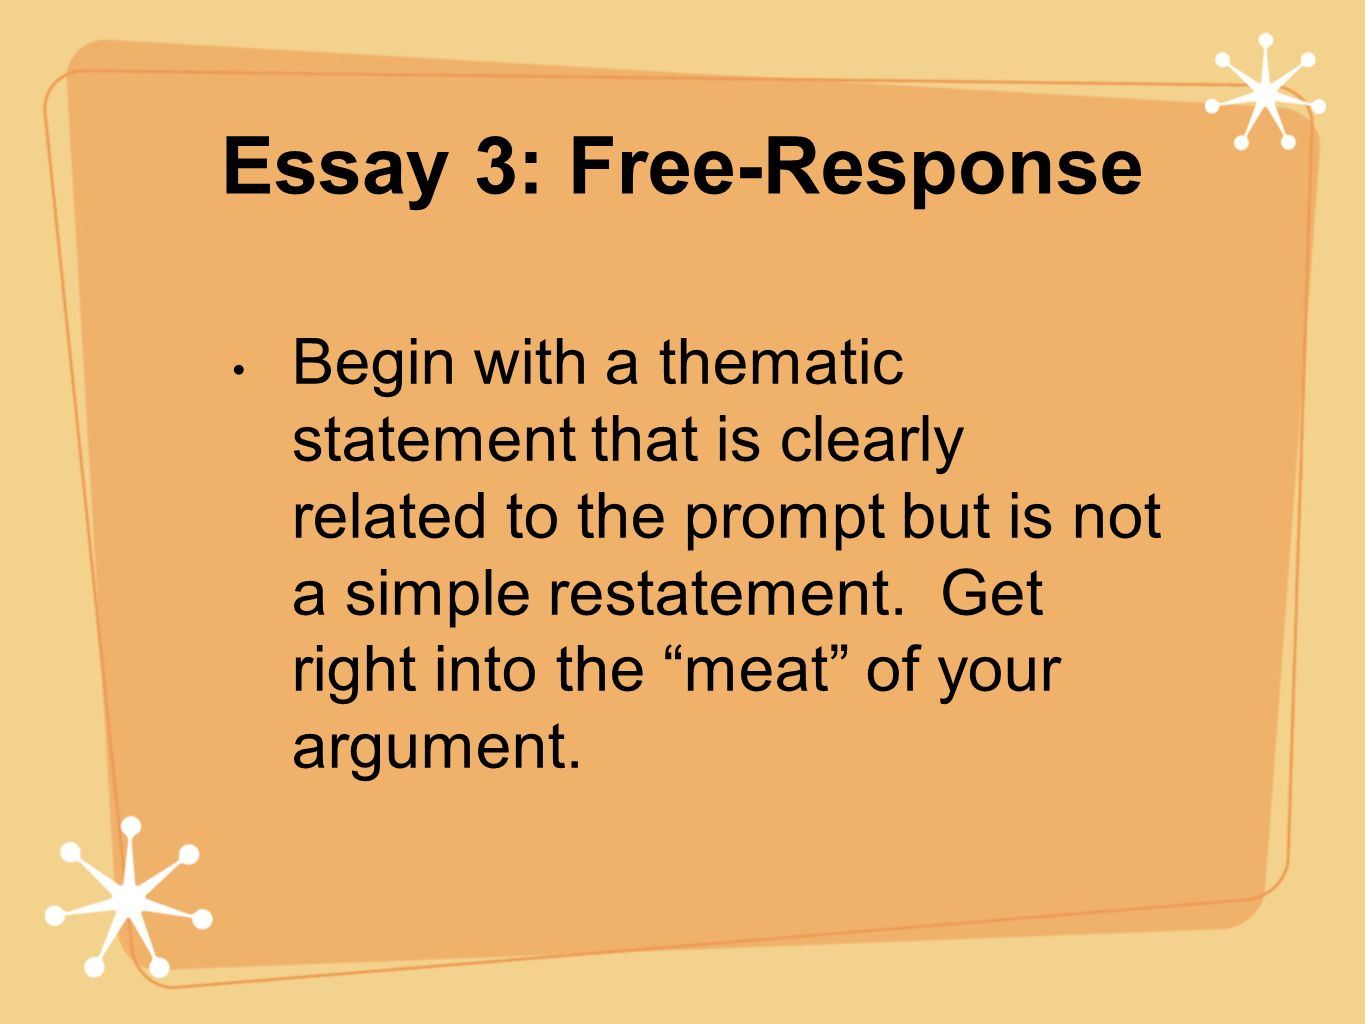 how to approach ap lit essays ppt 6 essay